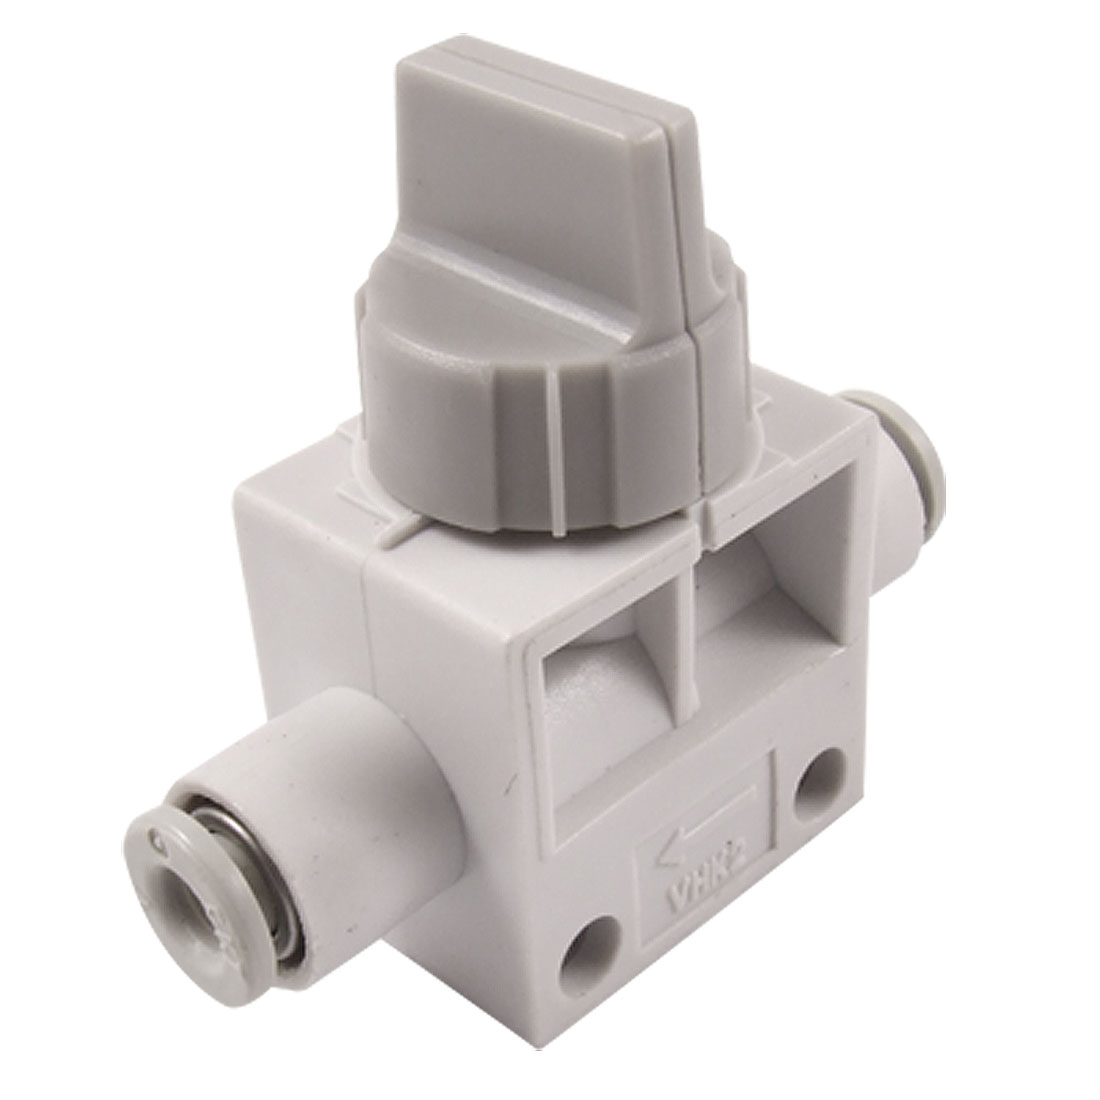 VHK2-04F-04F 4mm One Touch Fitting Pneumatic Quick Connector Hand Valve